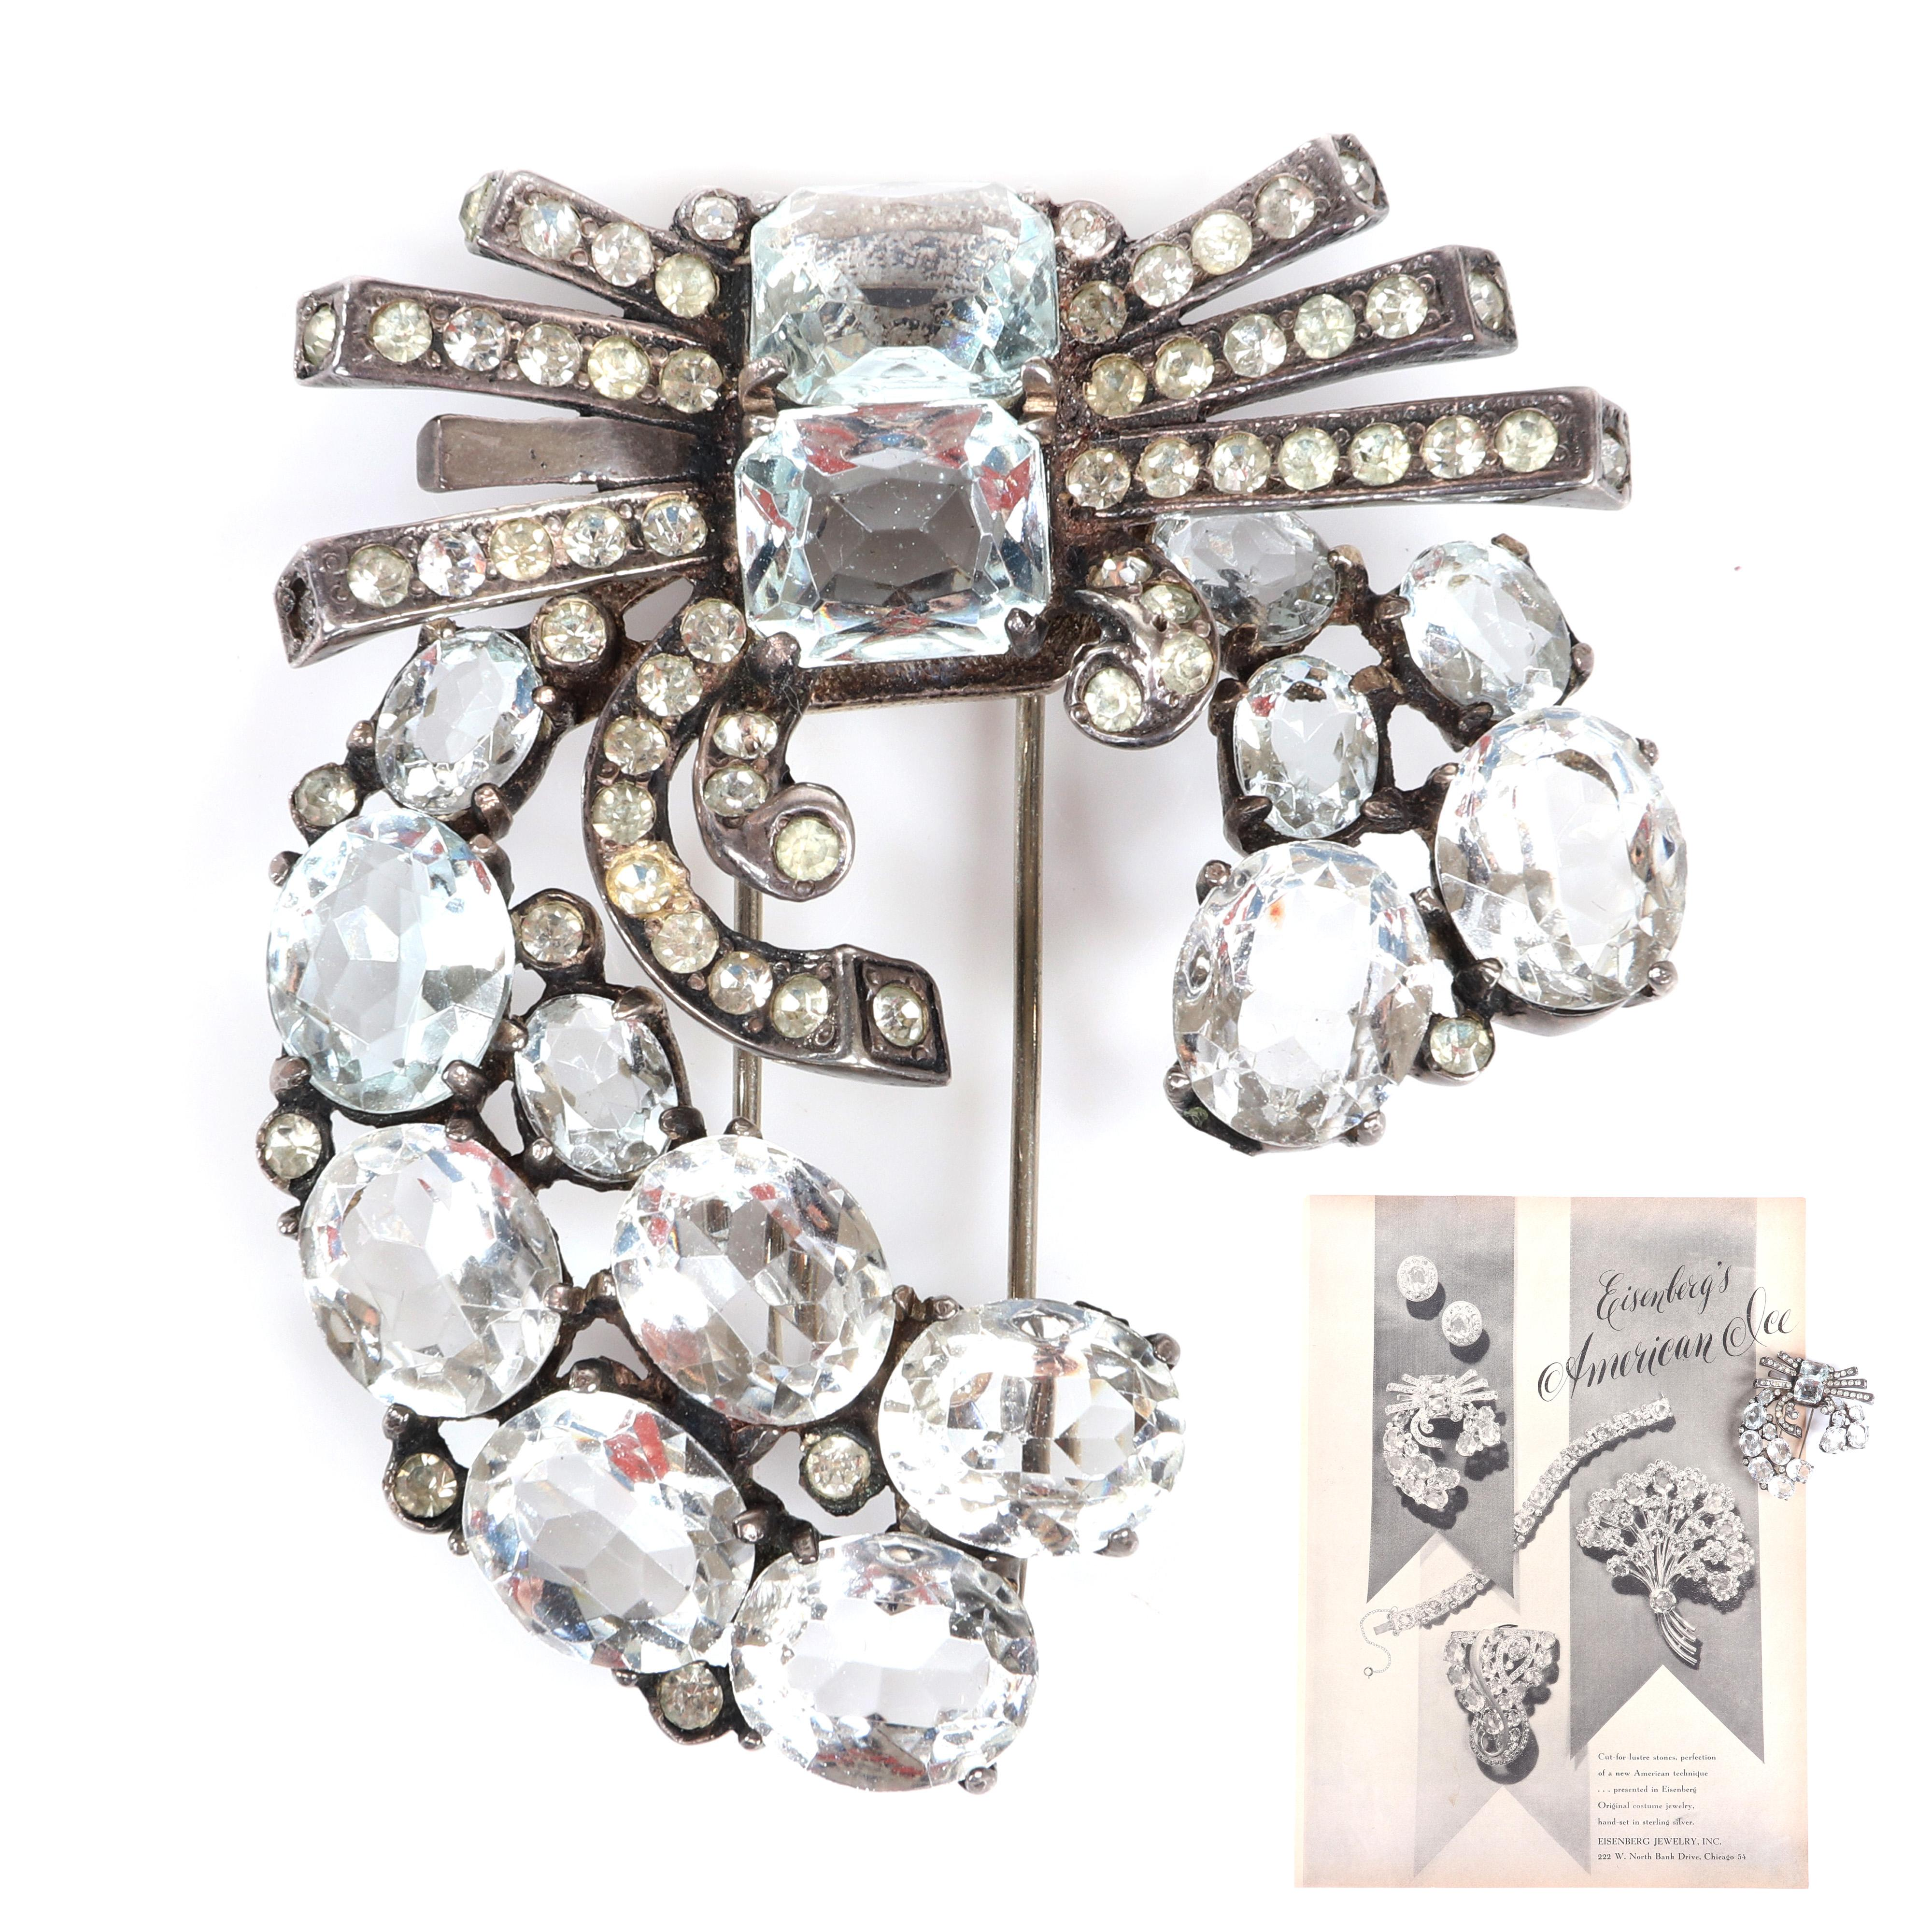 "Eisenberg Original diamante sterling fur clip with icy blue accents with large open-backed clear crystals and pave. Includes Vogue 1946 RARE advertisement featuring pin. 3 1/4"" x 2 1/4"""